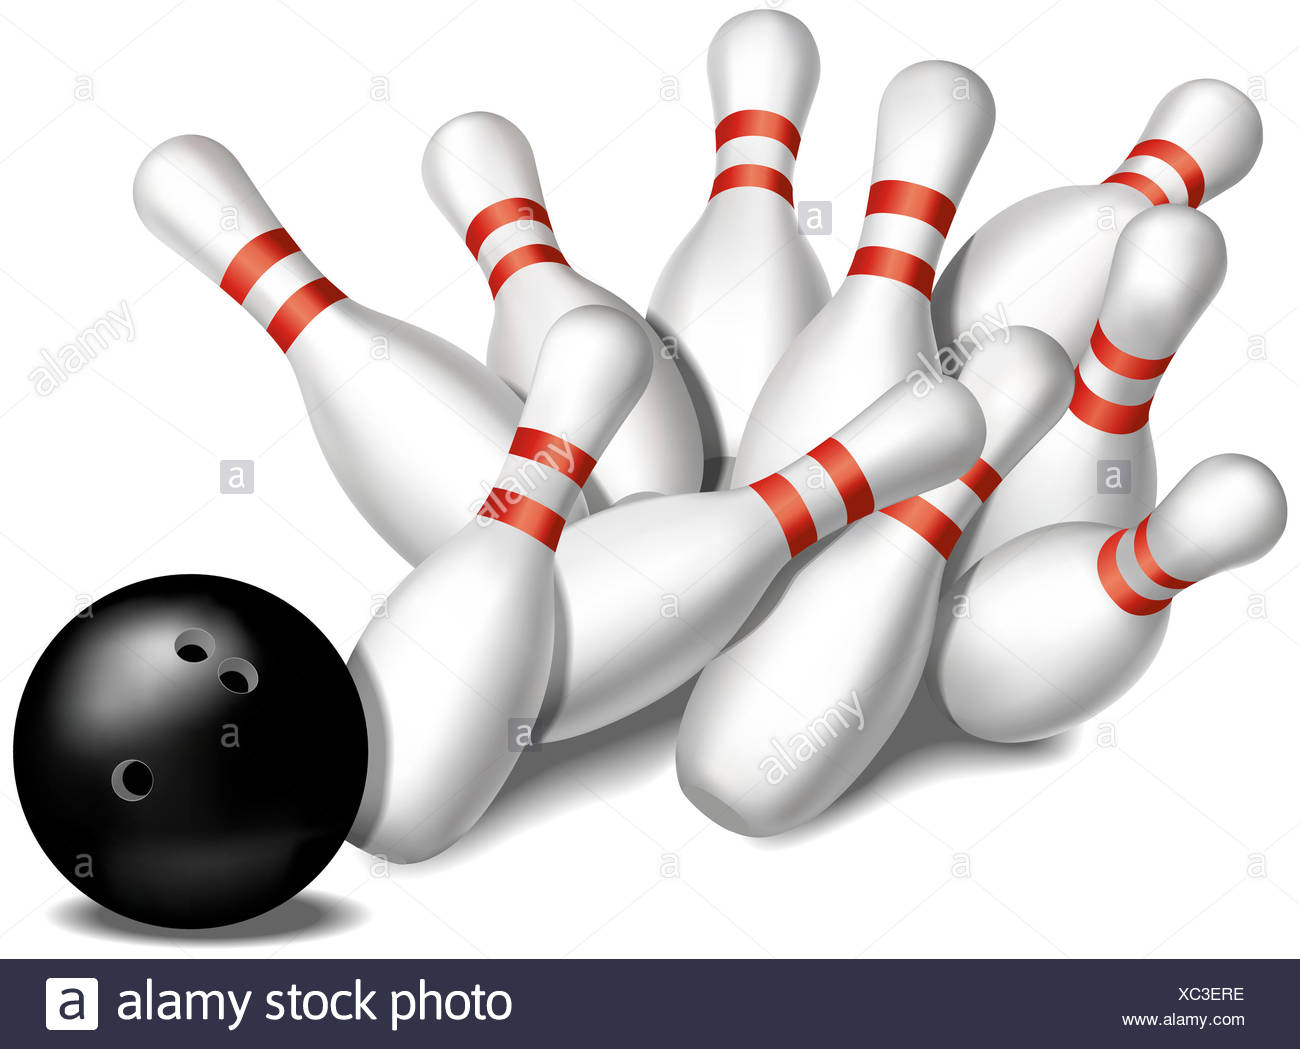 Bowling Pins Being Knocked Down By A Bowling Ball Stock Photo